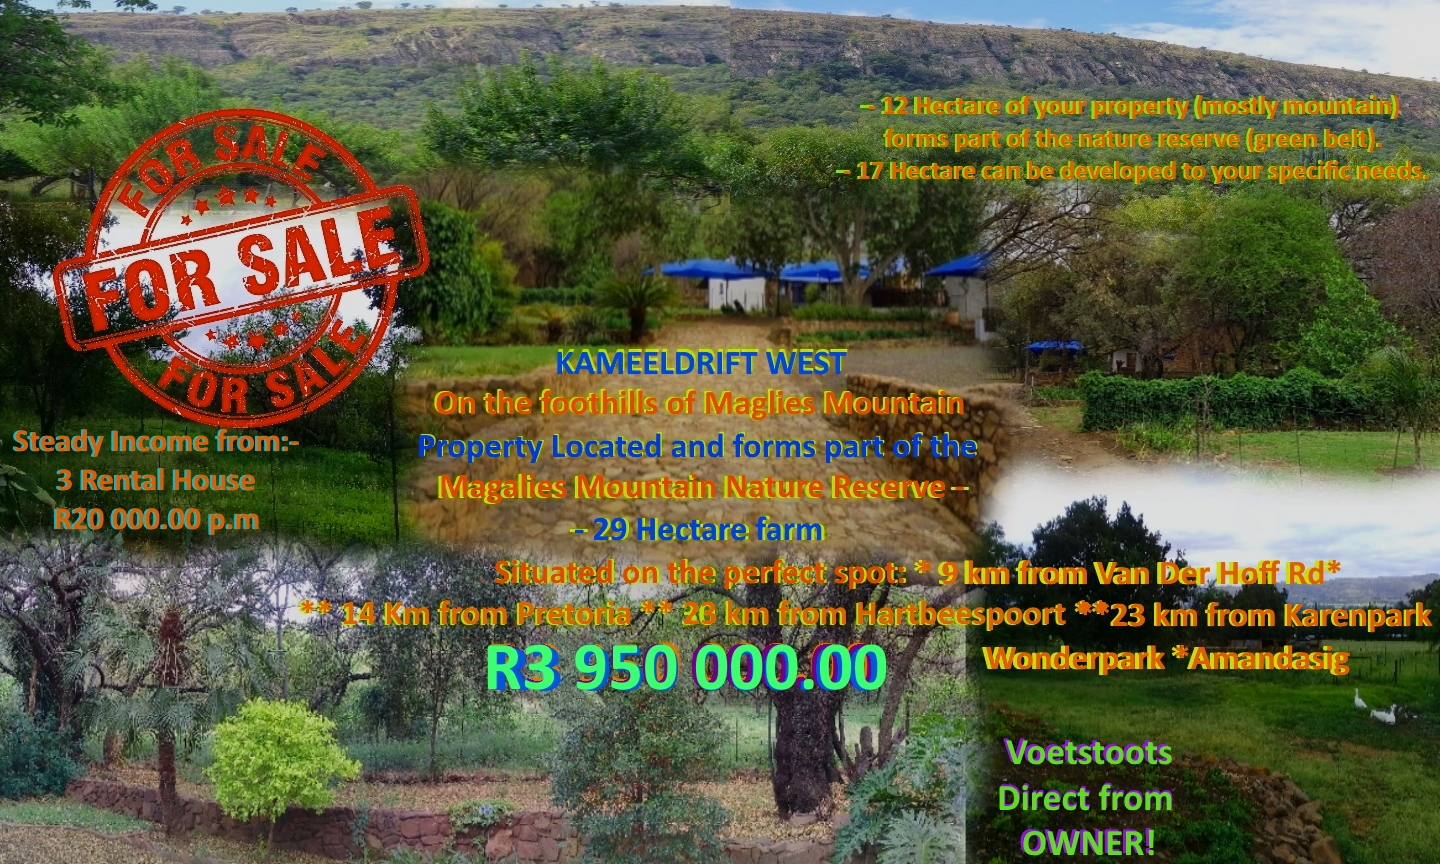 Kameeldrift West - Nearly 30 hectares with R20 000 Income PM Don't MISS OUT on this DIAMOND